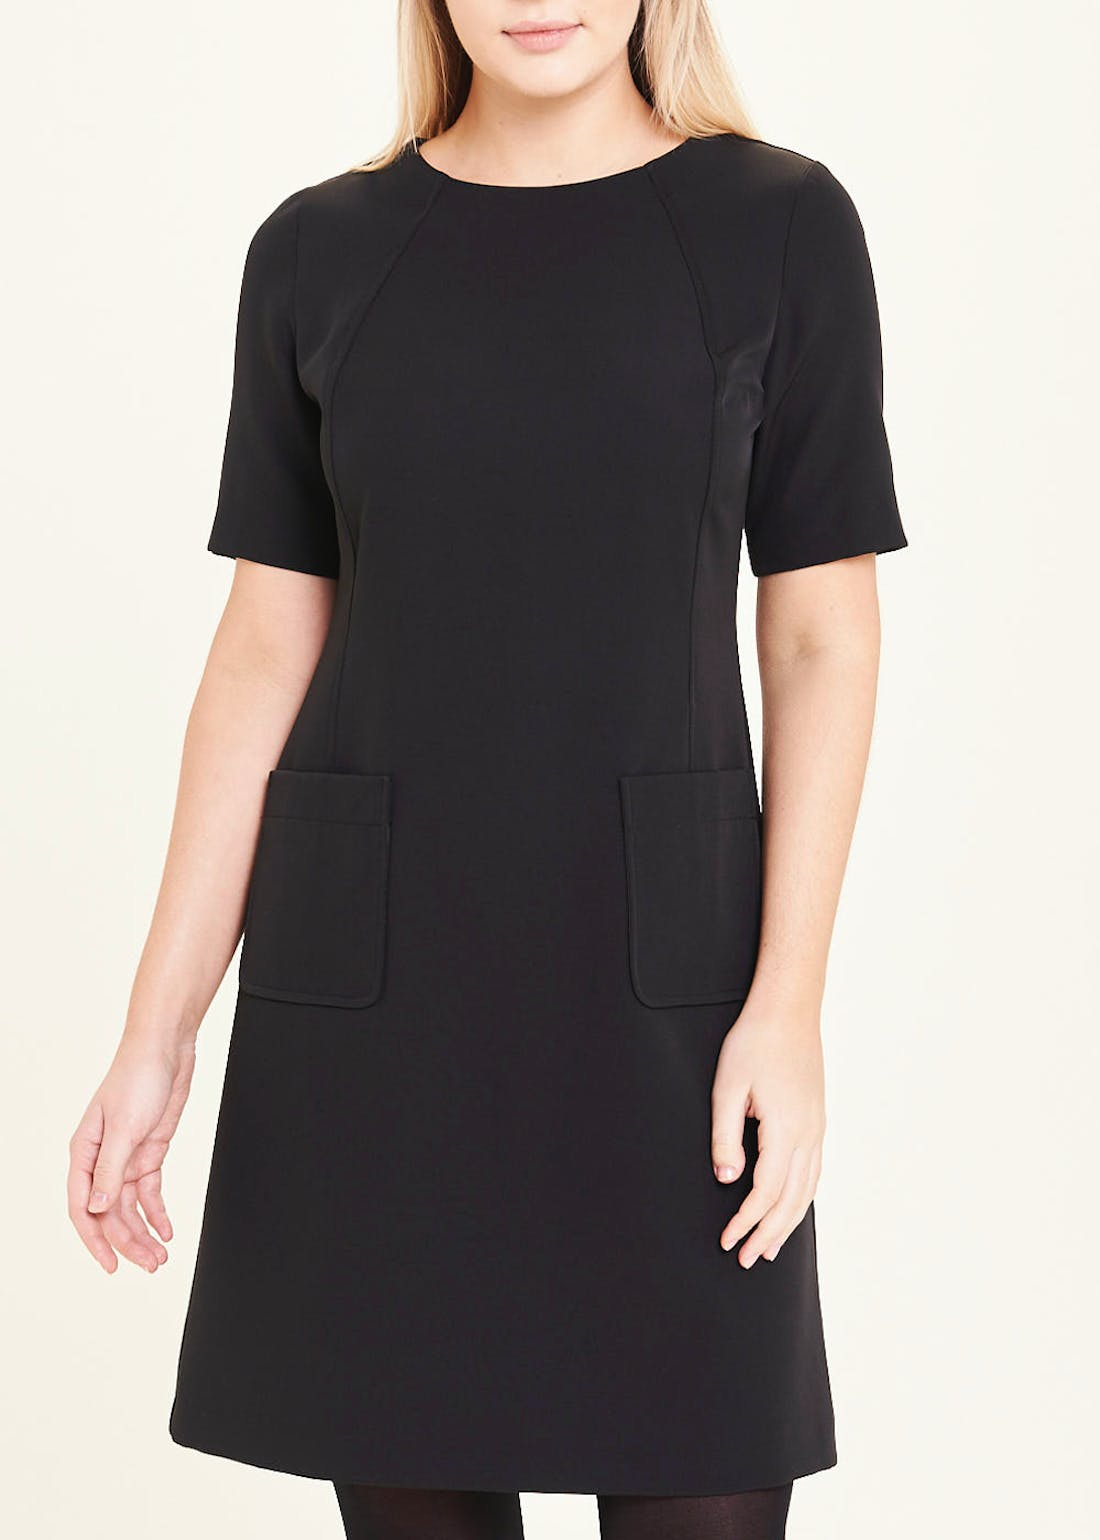 Black Short Sleeve Pocket Shift Dress